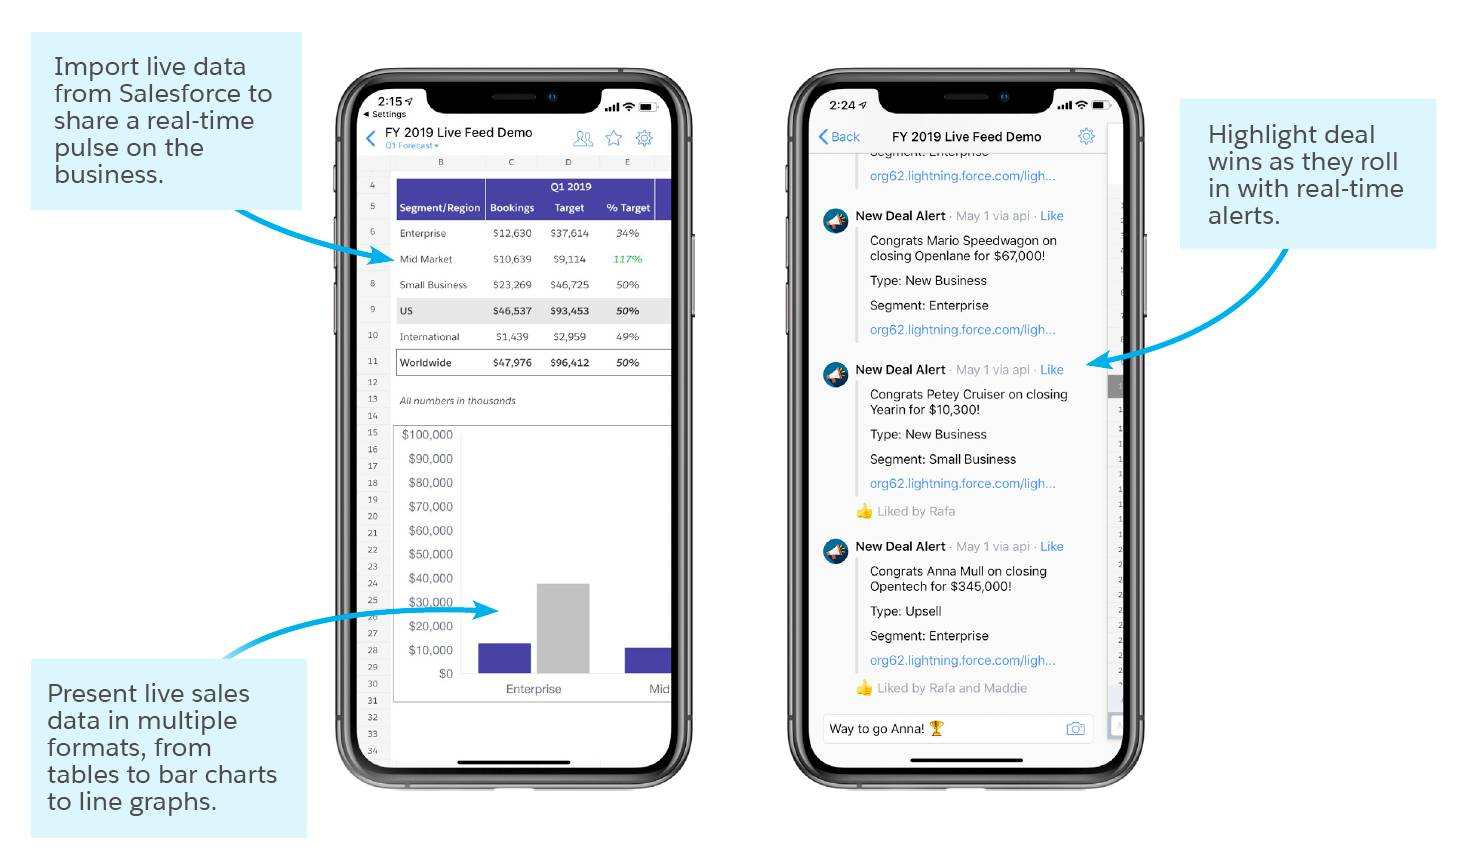 Two mobile phones showing the ability to import live data from Salesforce, present live sales data in multiple formats, and highlight deal wins as they roll in with real-time alerts.